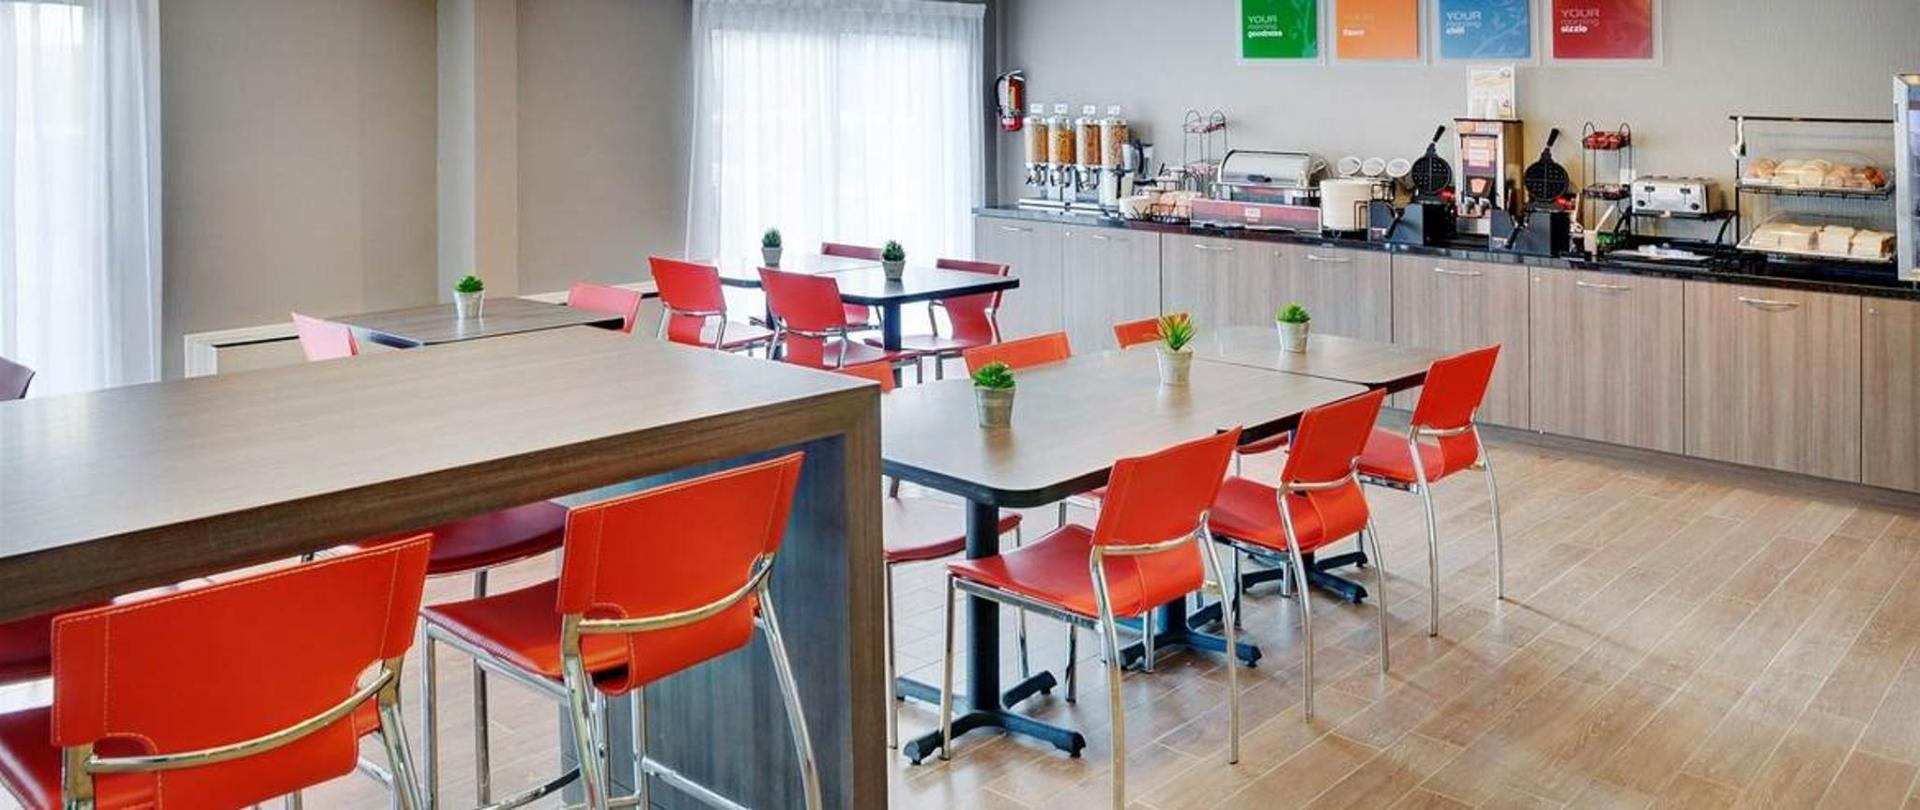 enjoy-your-free-hot-breakfast-in-our-new-breakfast-room.jpg.1170x493_default.jpg